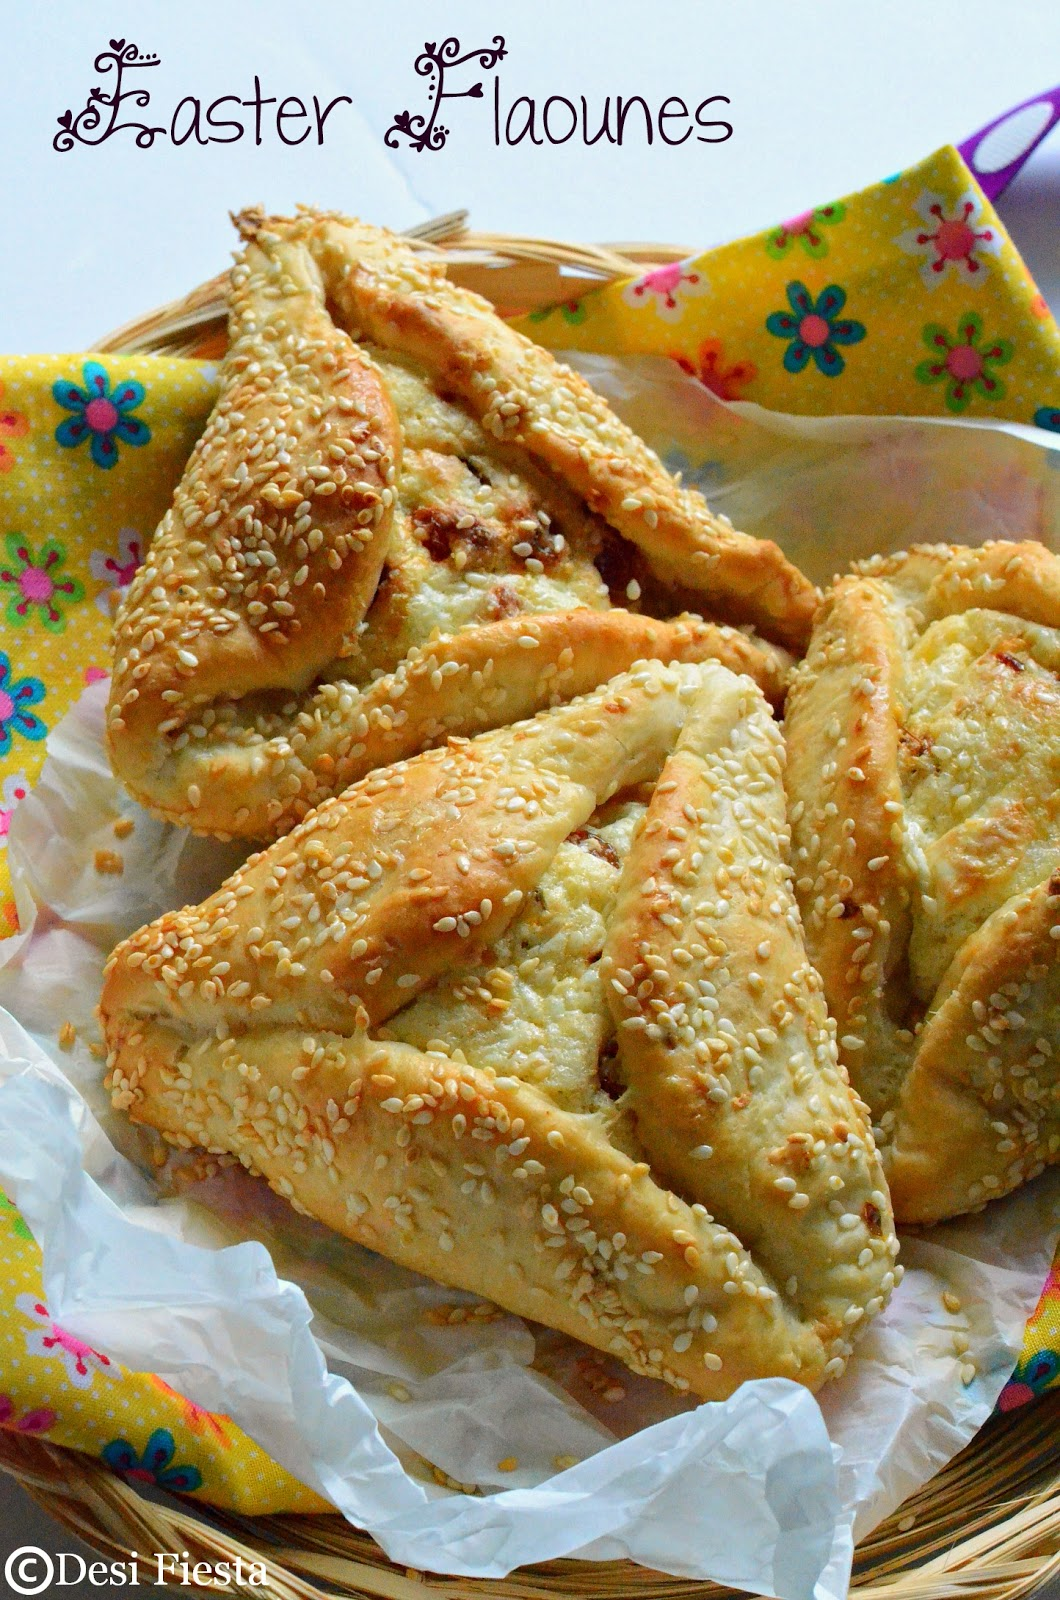 Cyprus Easter Bread